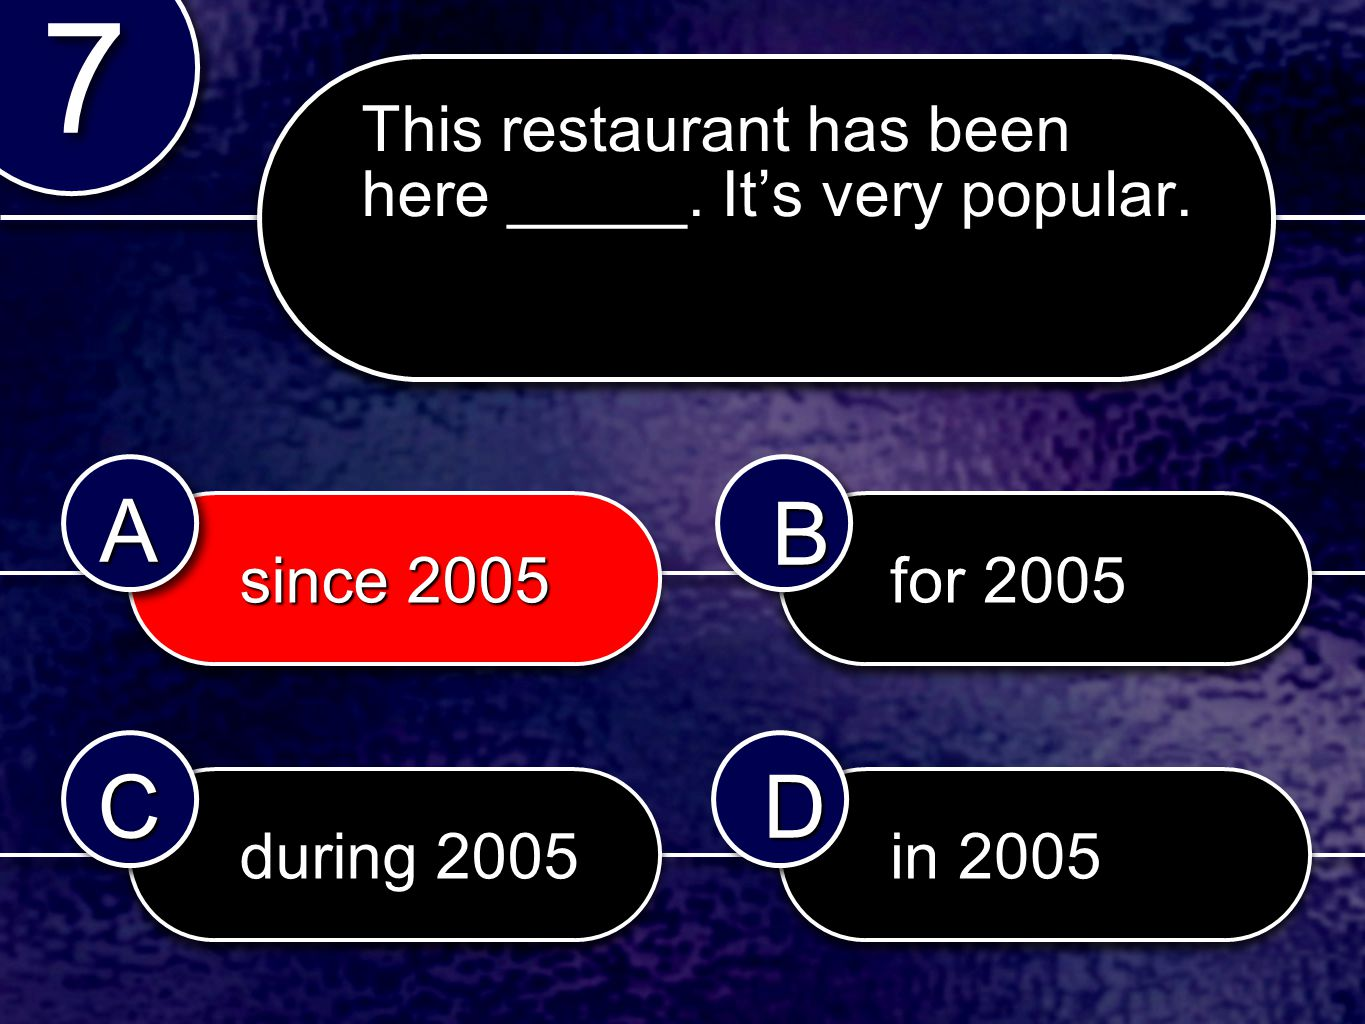 for 2005 since 2005 since 2005 during 2005 in 2005 7 7 AABB CCDD This restaurant has been here _____.